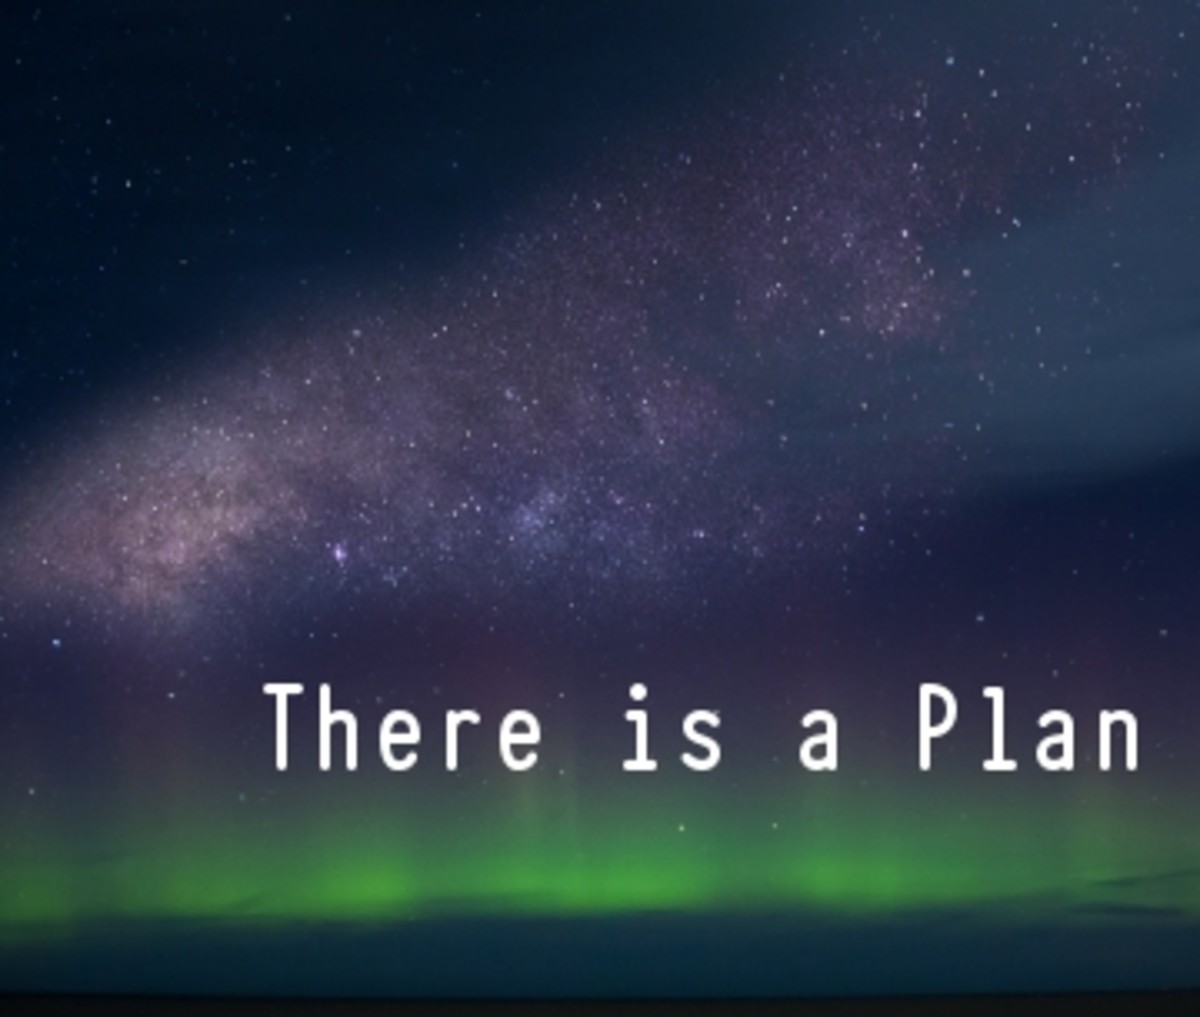 Poem: There Is a Plan